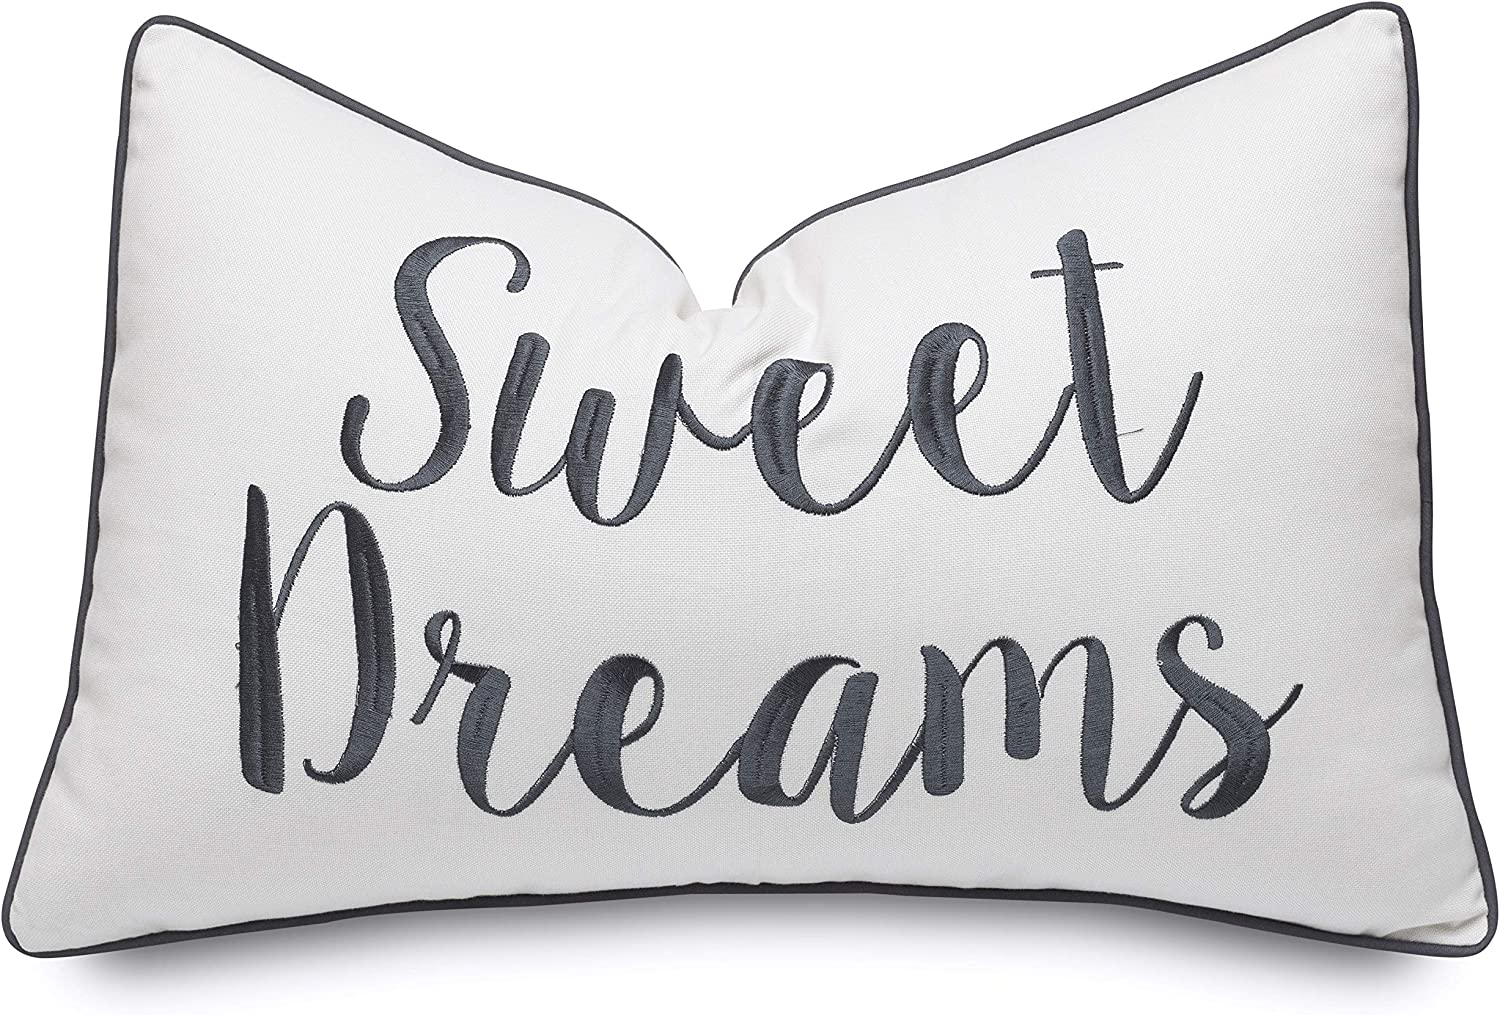 Rudransha Sweet Dreams Embroidered Lumbar Accent Throw Pillow Cover - Bedroom Decor - 12x18, Ivory-Grey